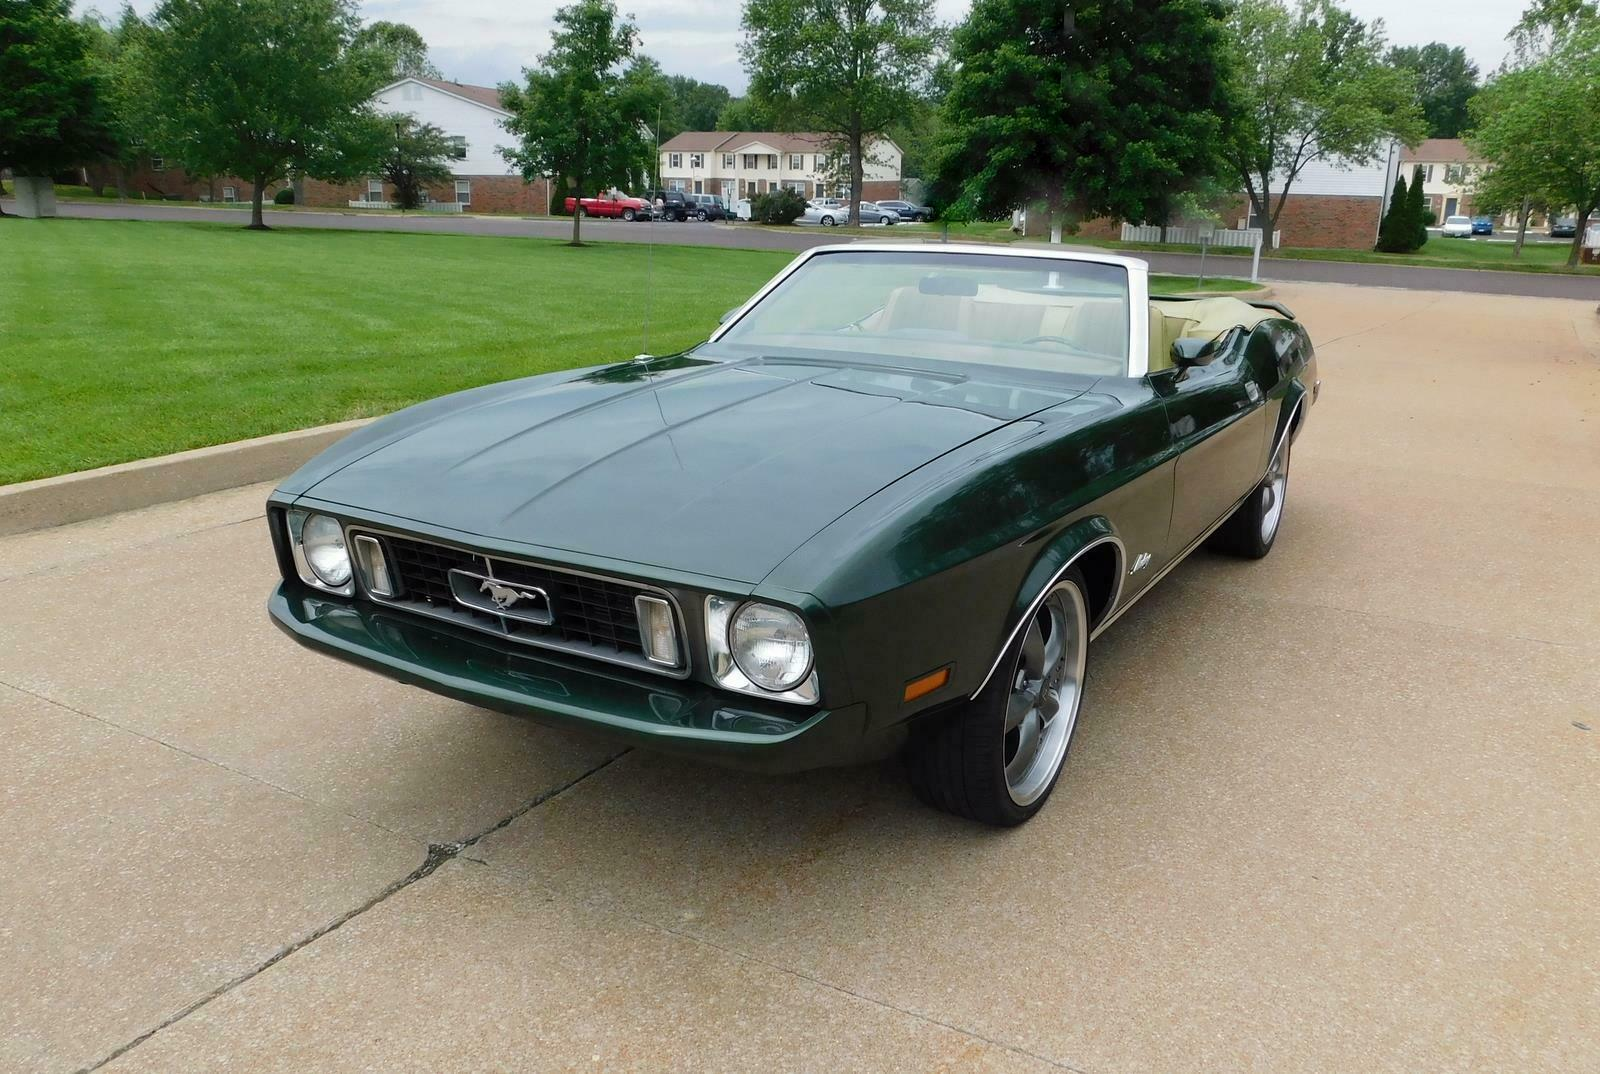 1973 Ford Mustang  61,851 Miles STUNNING COLOR COMBINATION ORIGINAL DRIVE TRAIN!